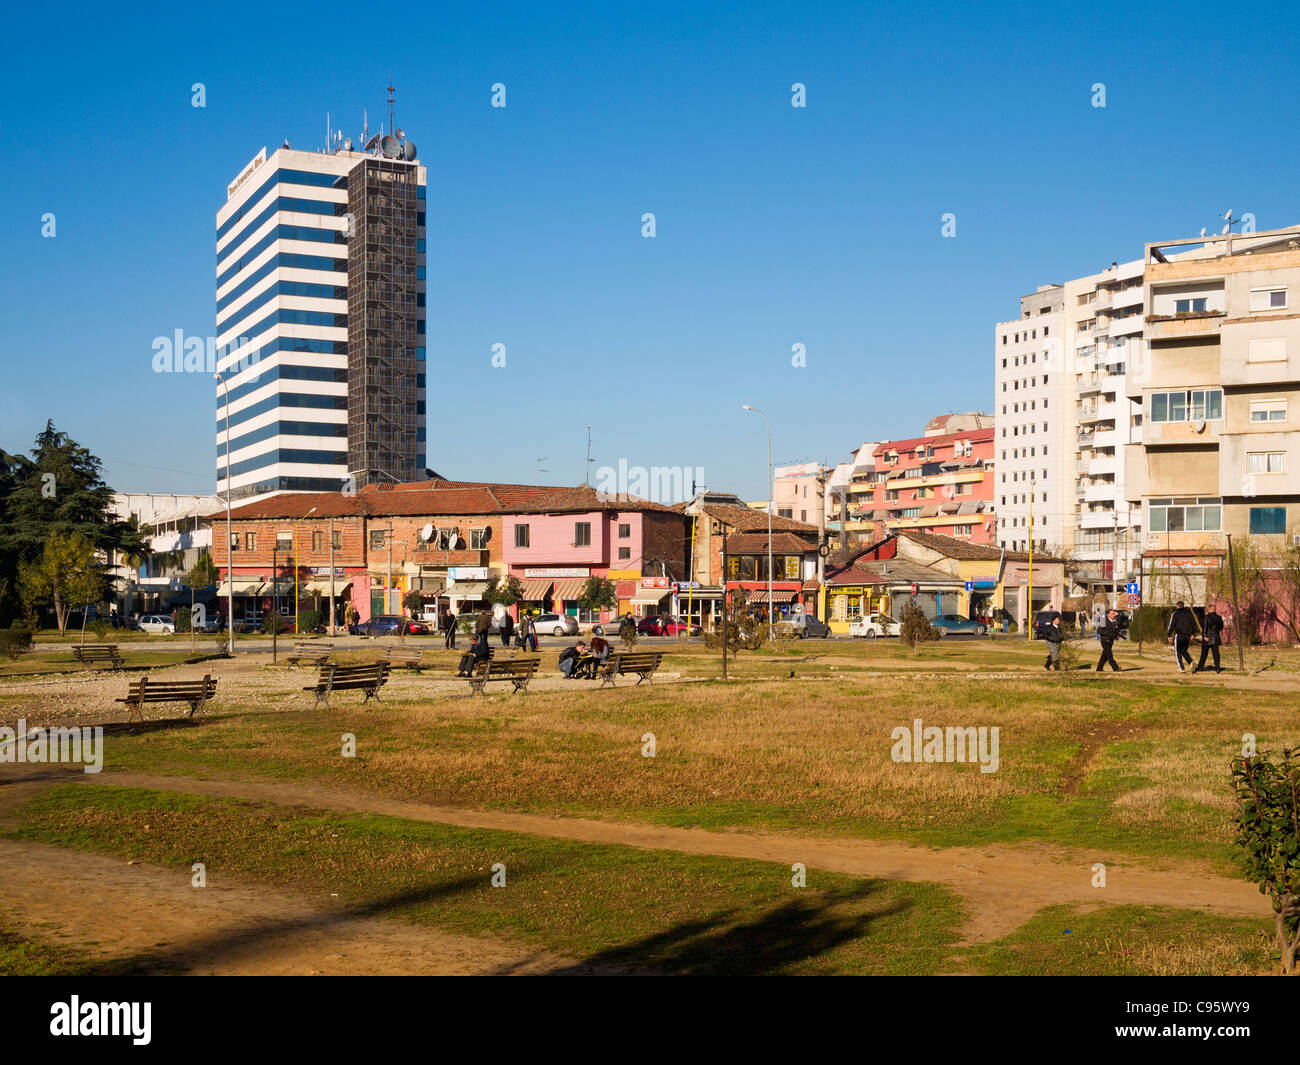 Community park and Tirana International Hotel, Tirana, Albania - Stock Image